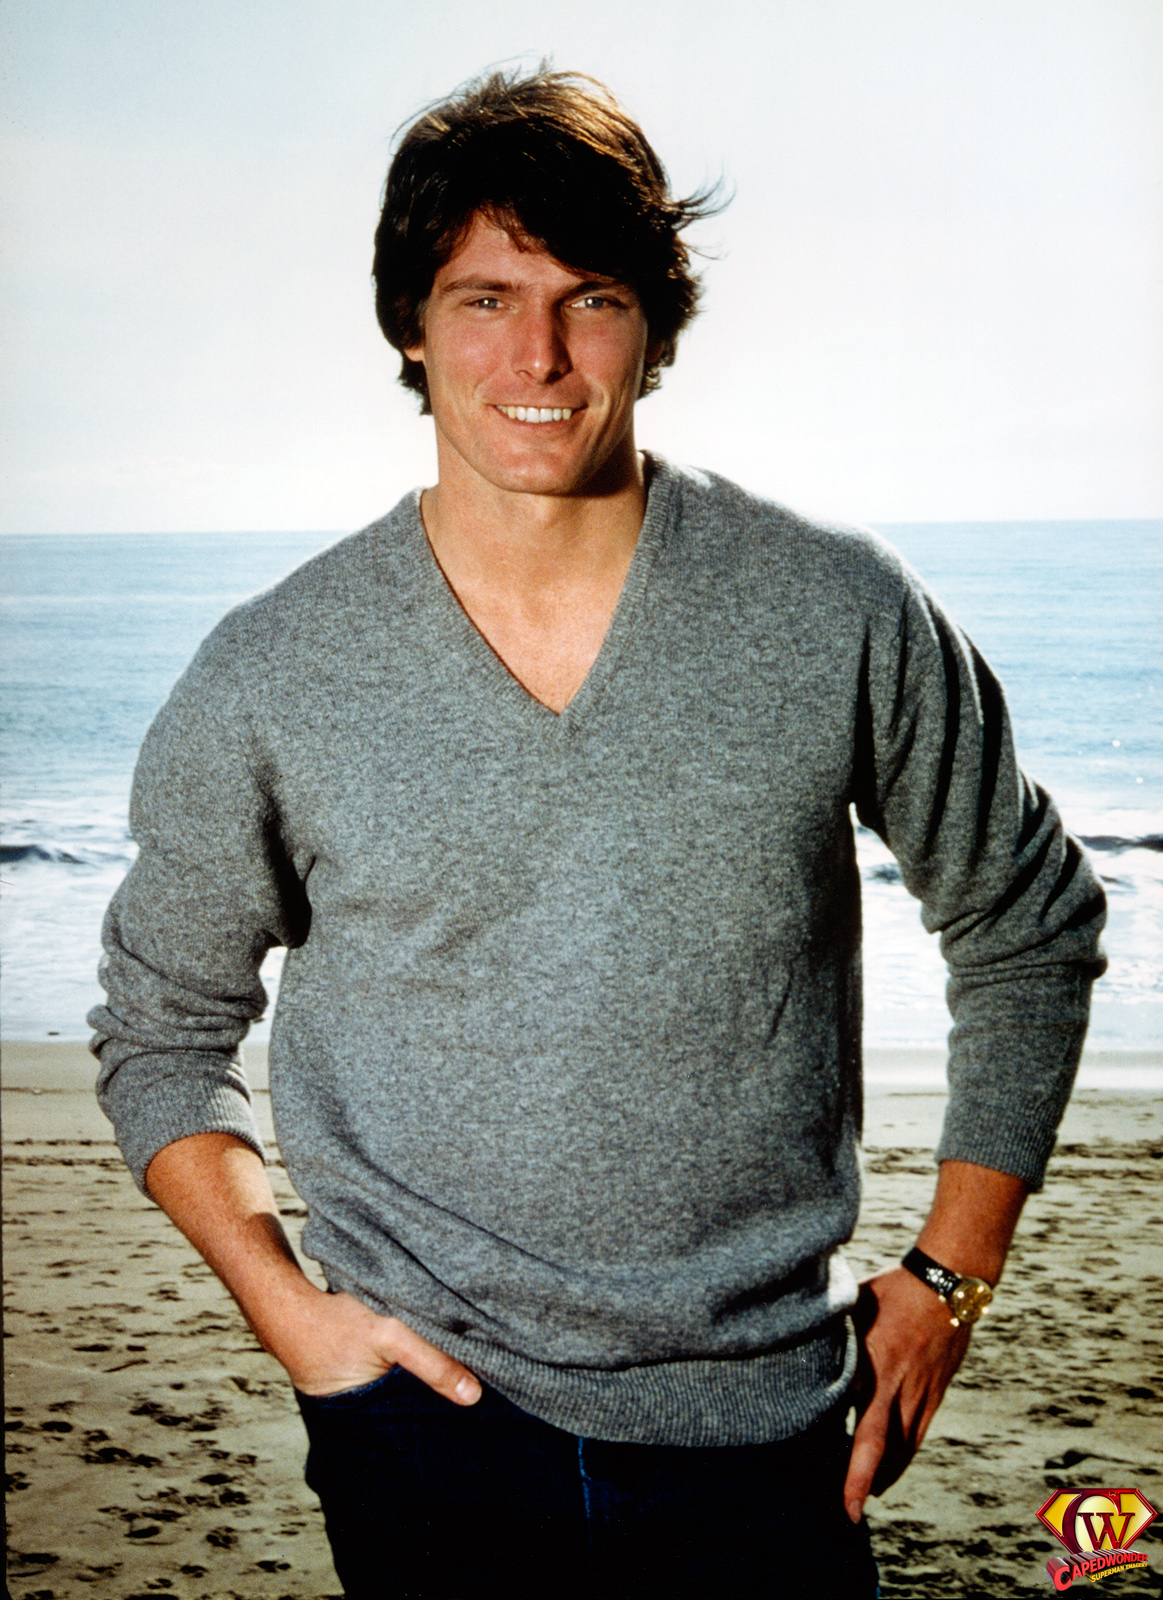 christopher reeve Product description framed 8x10 glossy print of christopher reeve this item would make a.